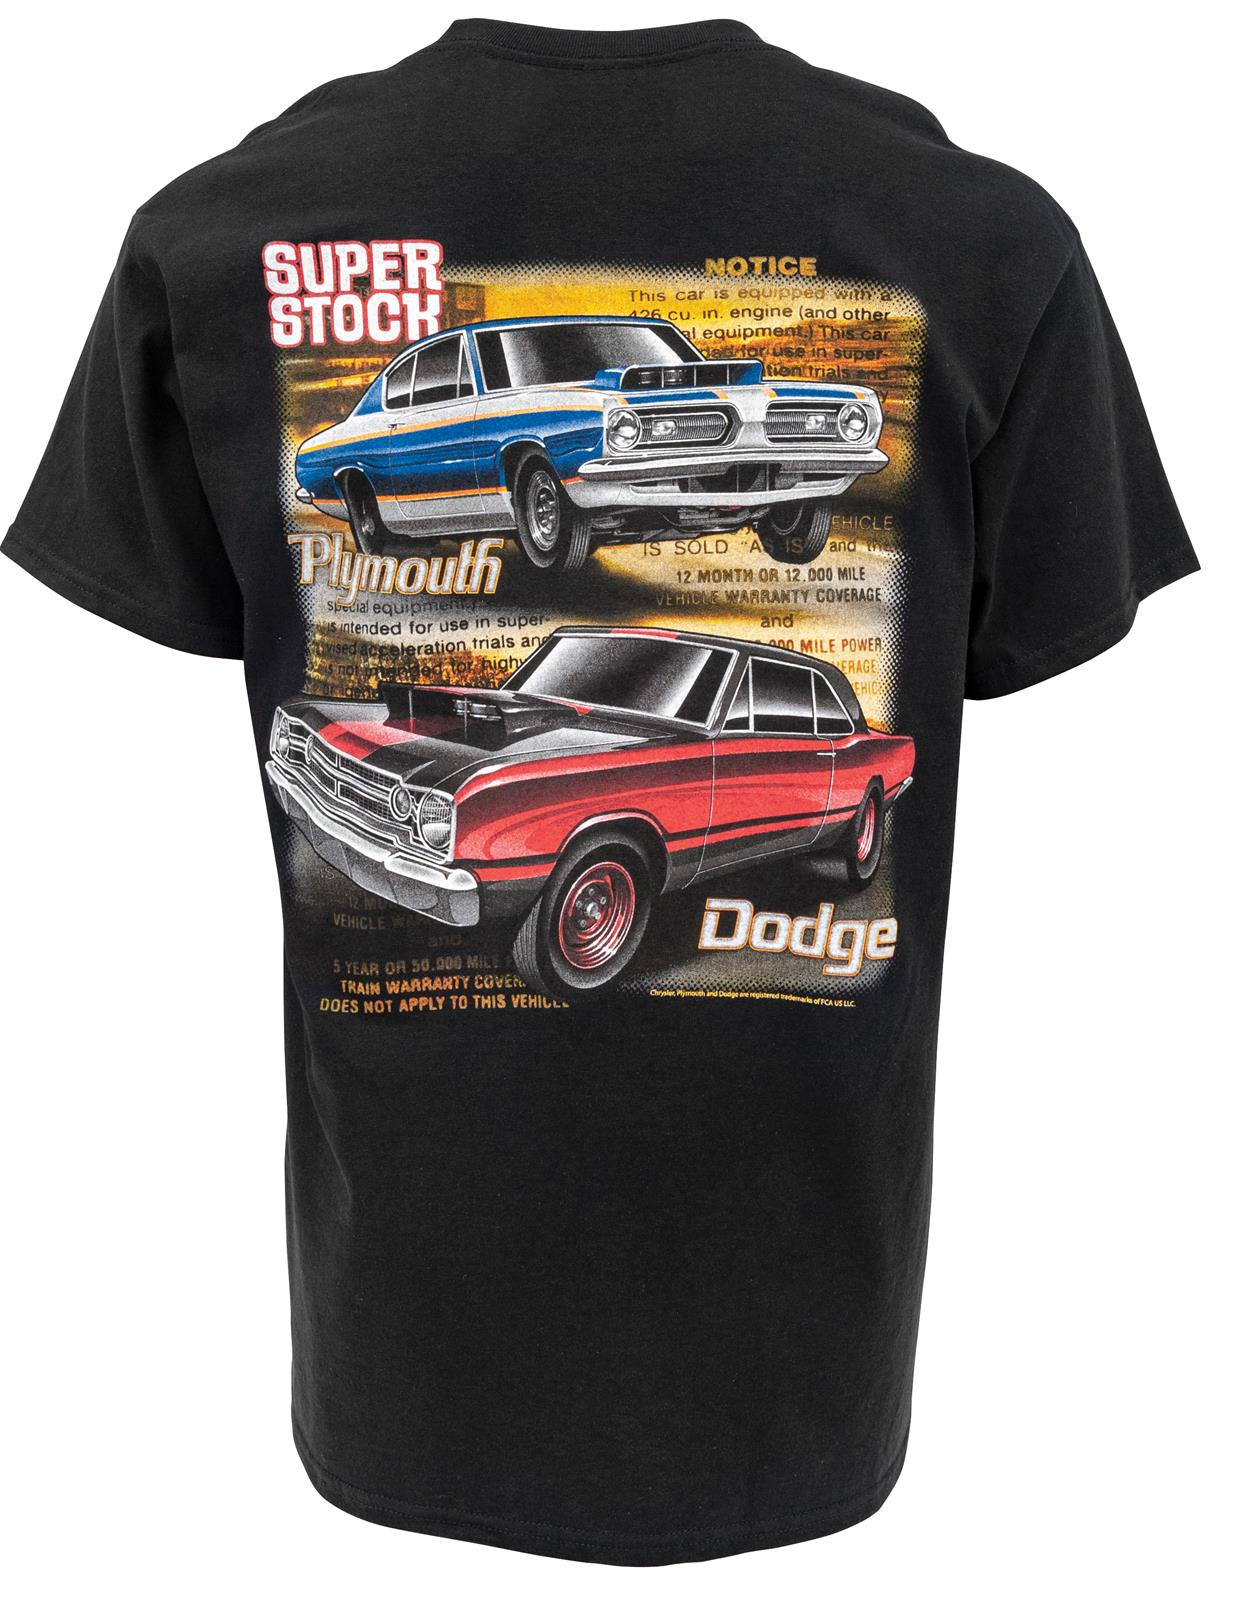 Summit Gifts 483144 Plymouth Dodge Super